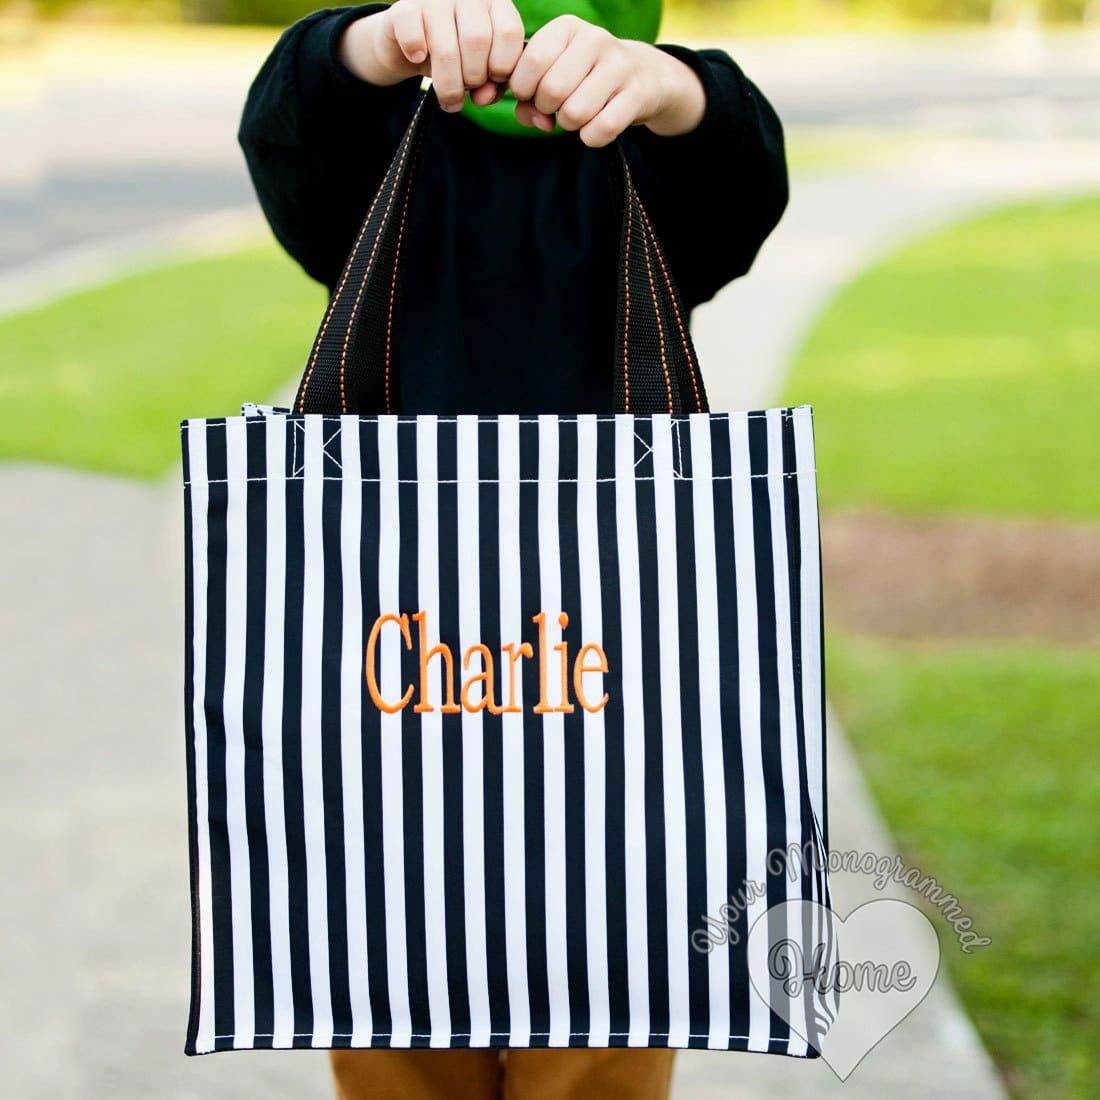 Monogrammed Trick or Treat Bags